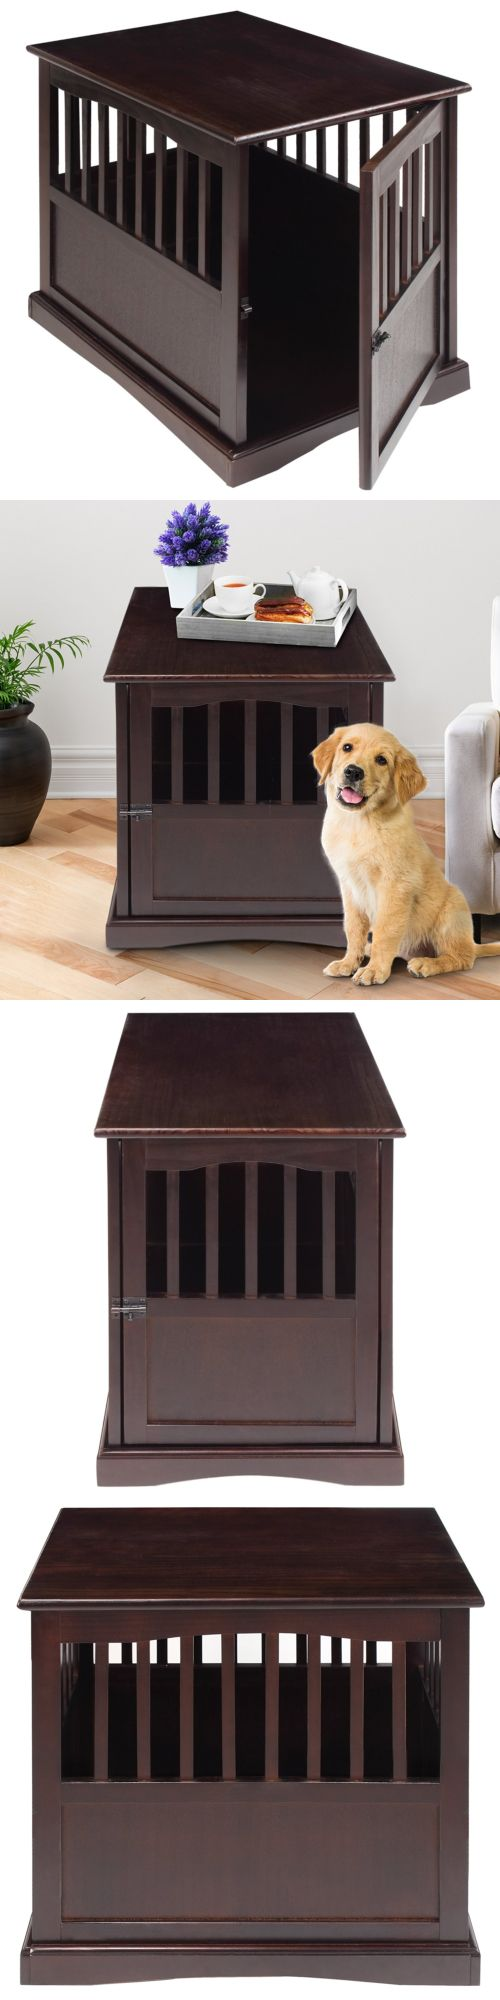 Animals Dog: Dog Kennel Wood Bed Small Crate Oversized Pet Cage Wooden Furniture End Table BUY IT NOW ONLY: $91.52